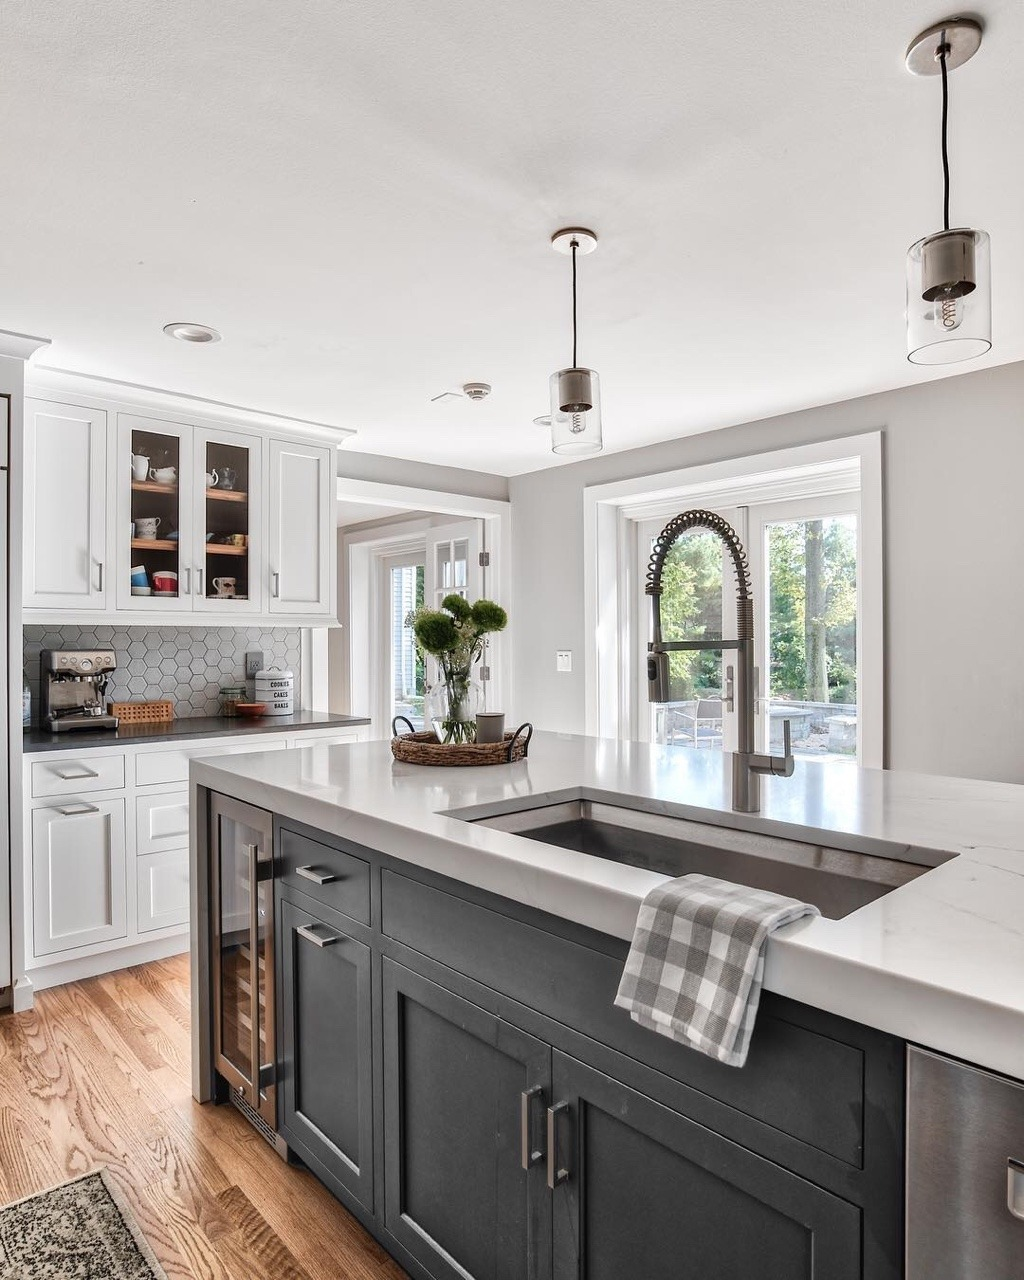 modern farmhouse kitchen with farmhouse sink island, white and grey kitchen cabinets, wood floors and hexagon white backsplash